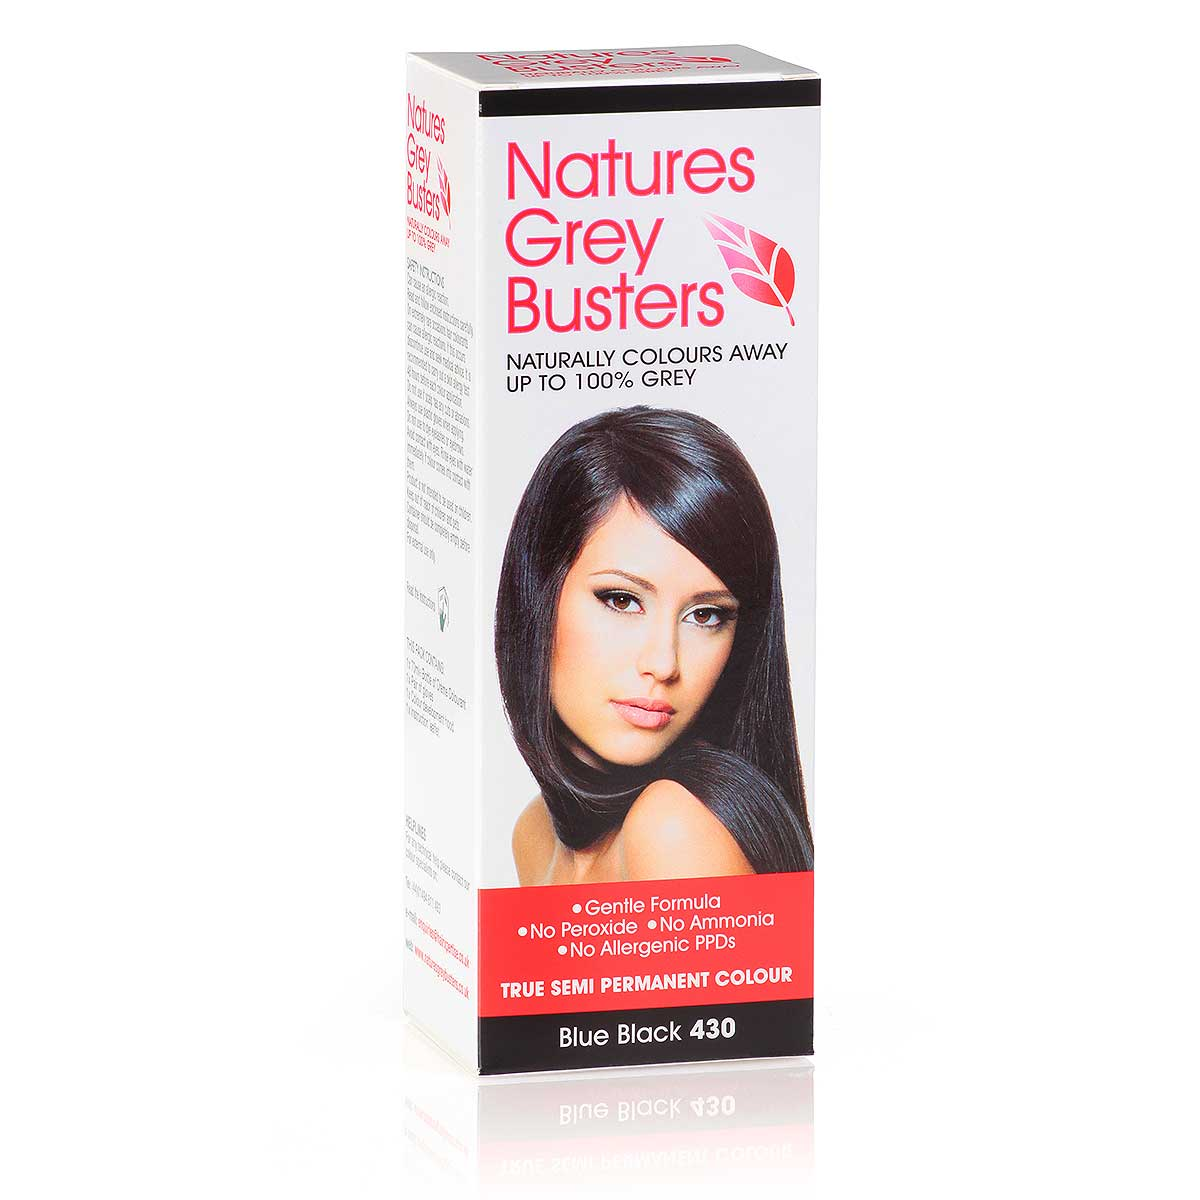 Ppd Free Natural Blue Black Hair Dye Natures Greybusters